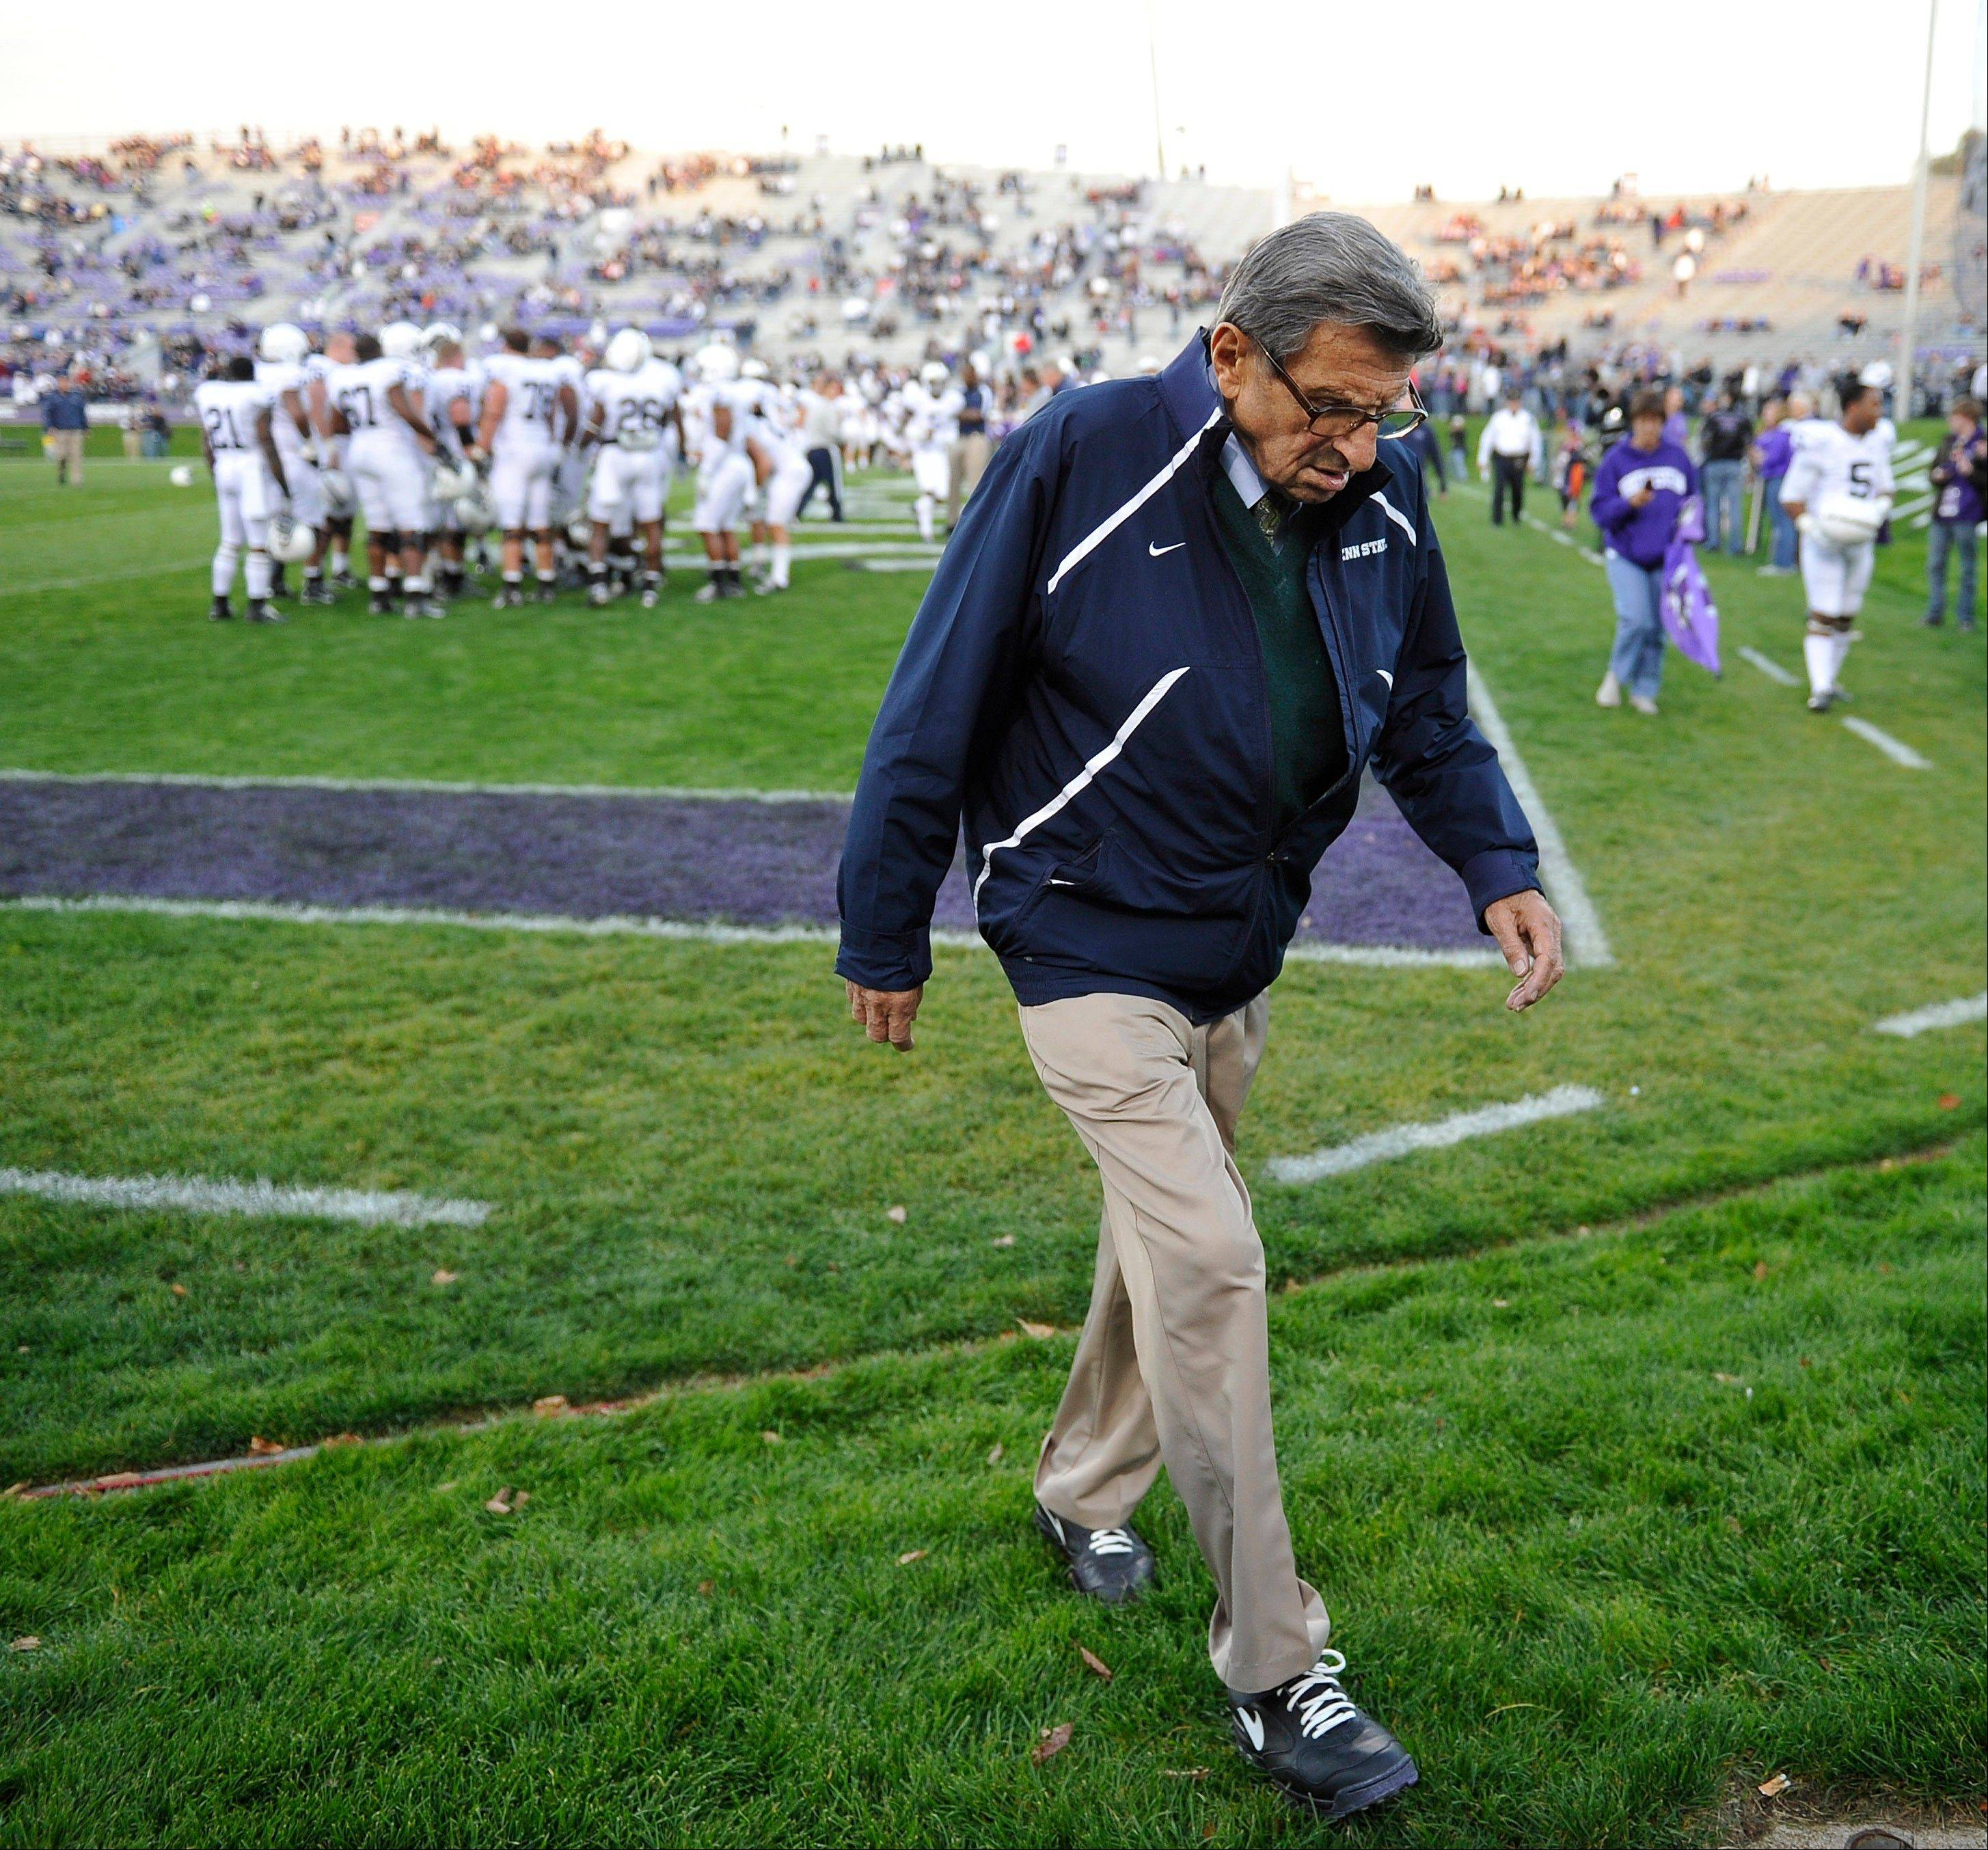 Paterno's legacy may now be damaged beyond repair